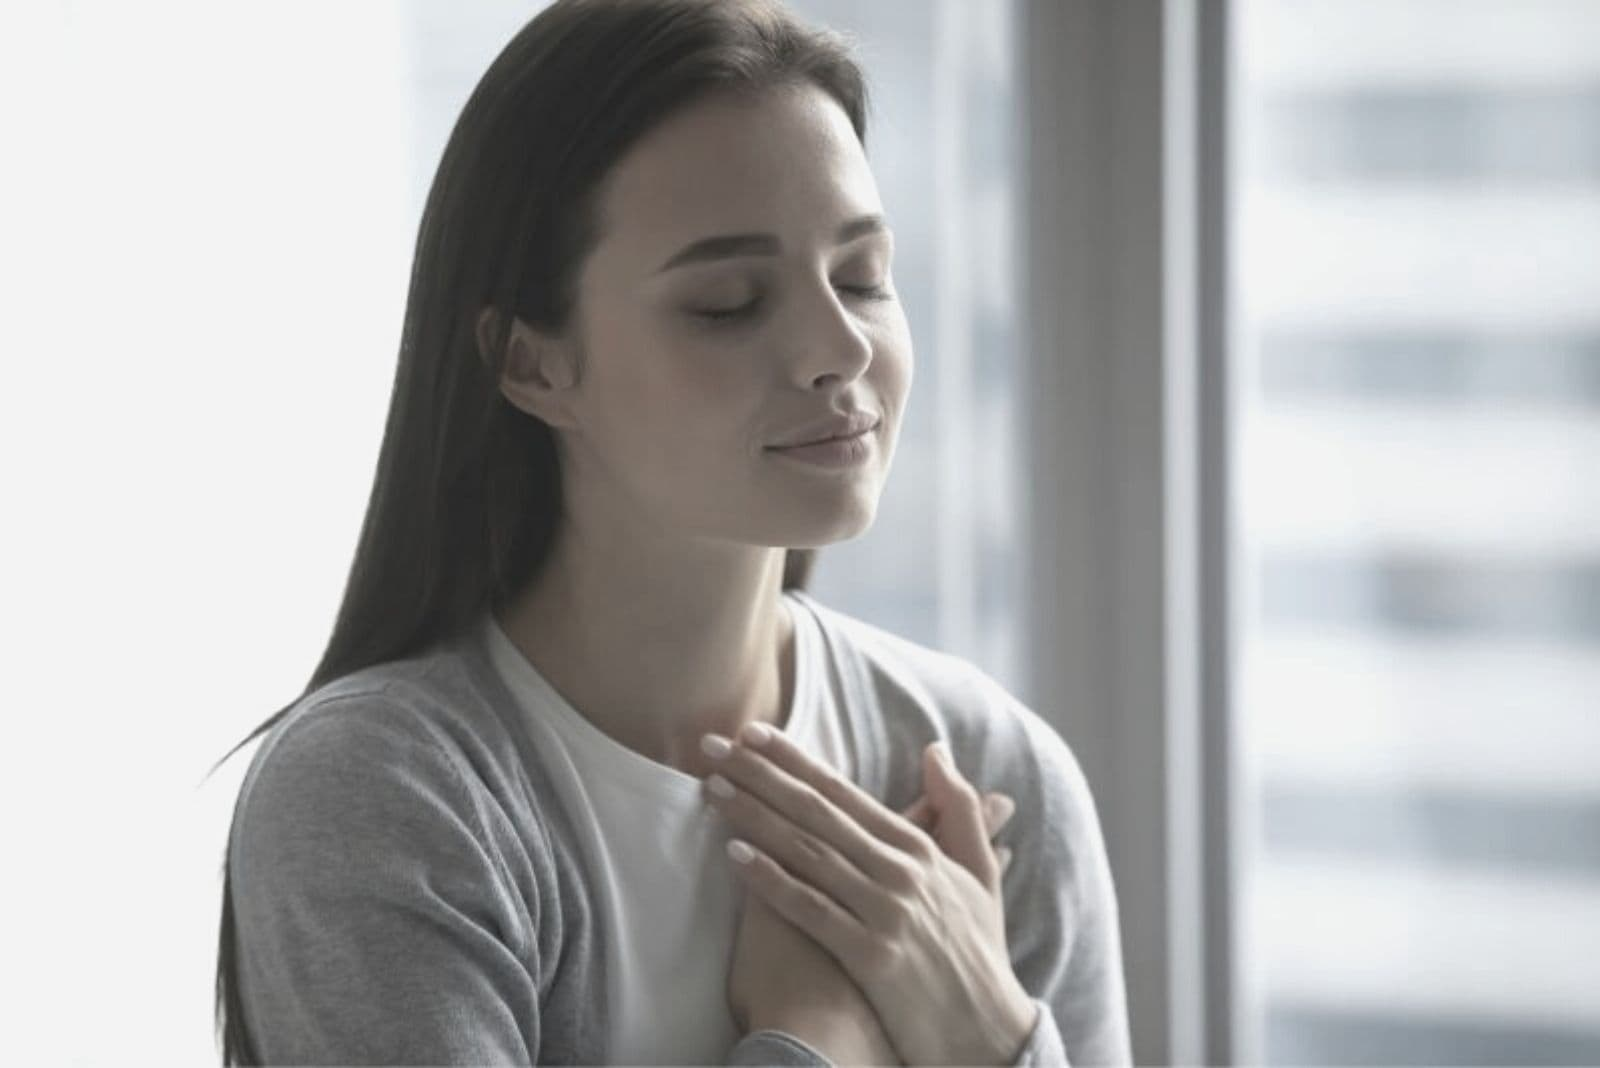 young beautiful woman closing her eyes and putting her hands close to her chest standing indoors